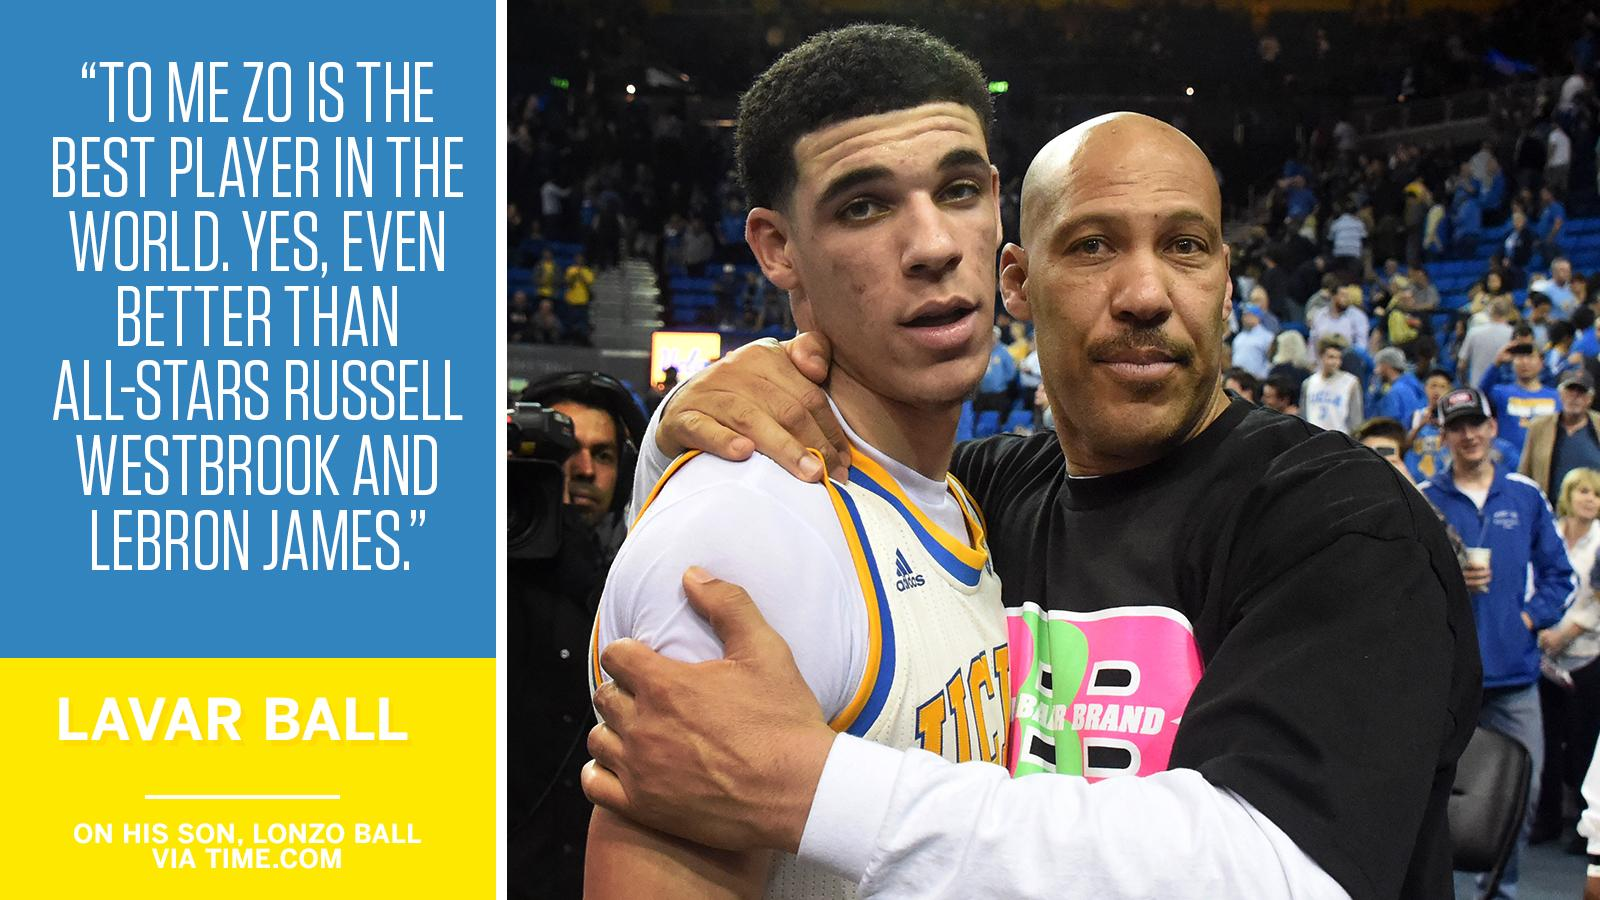 LaVar Ball believes his son is the best player on the planet. https://t.co/sENdrVINm4